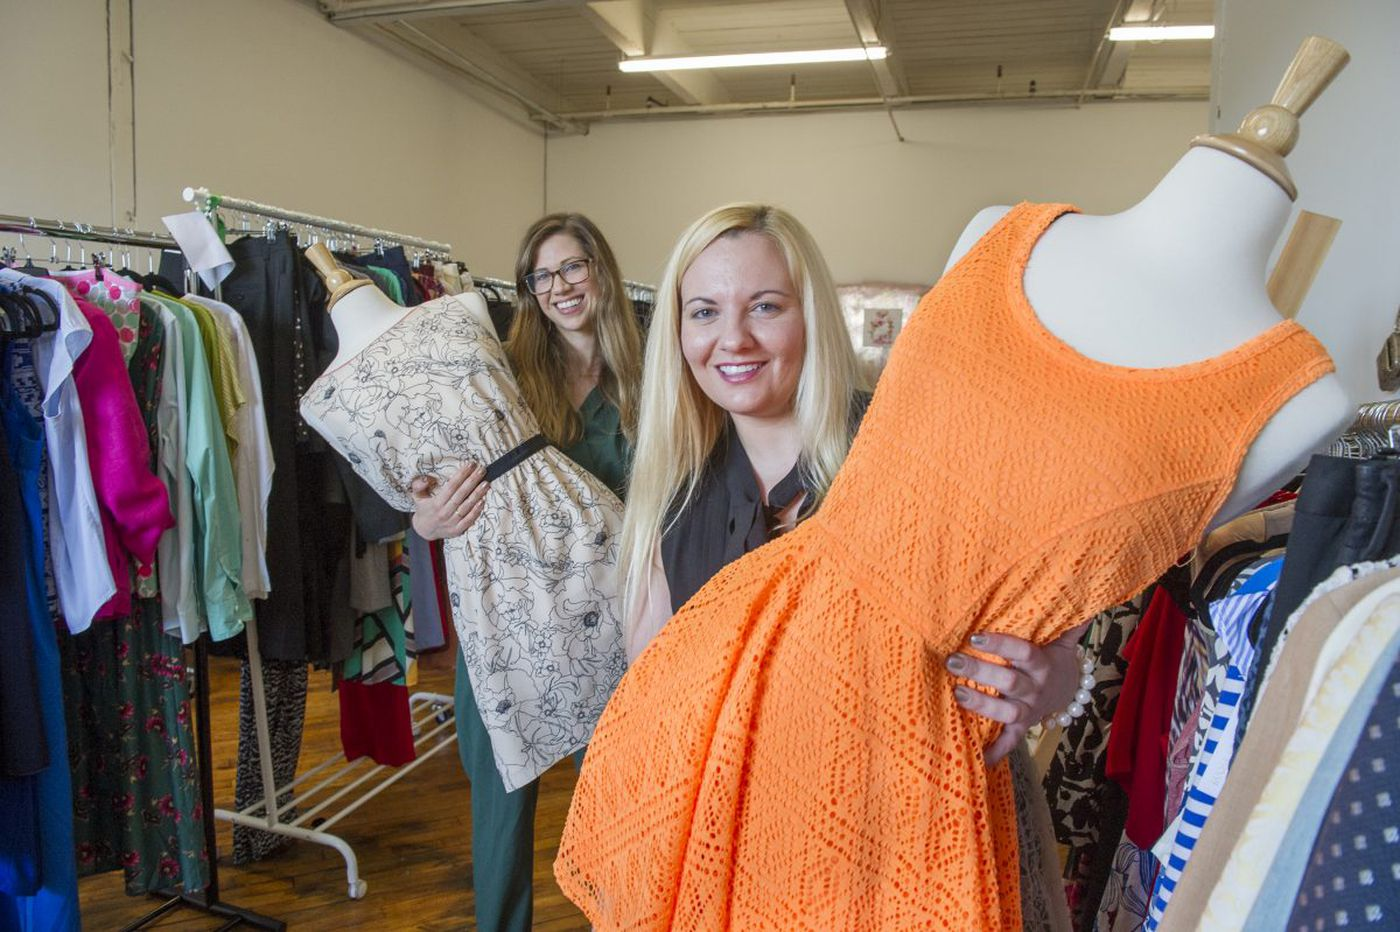 'And We Evolve': The Philly business designed to help fashionistas shop conscientiously   Elizabeth Wellington